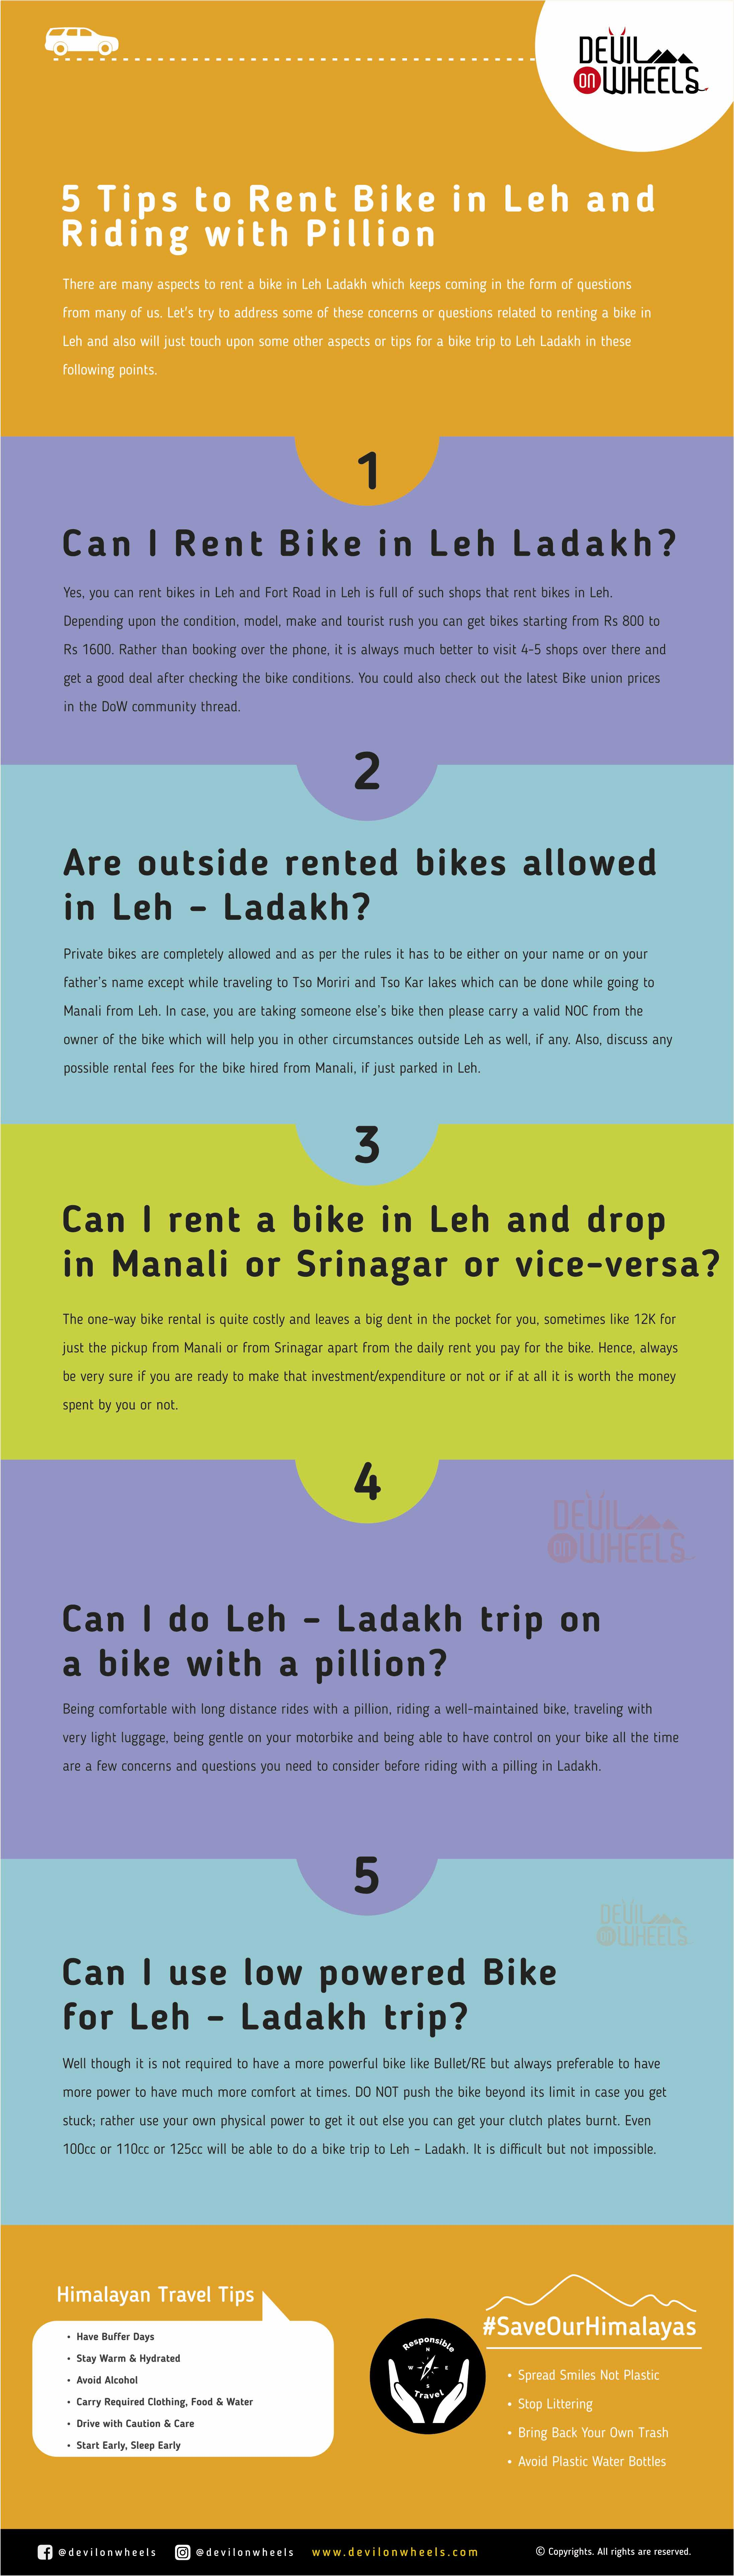 5 Important Tips to Rent Bike in Leh Ladakh and Ride with Pillion